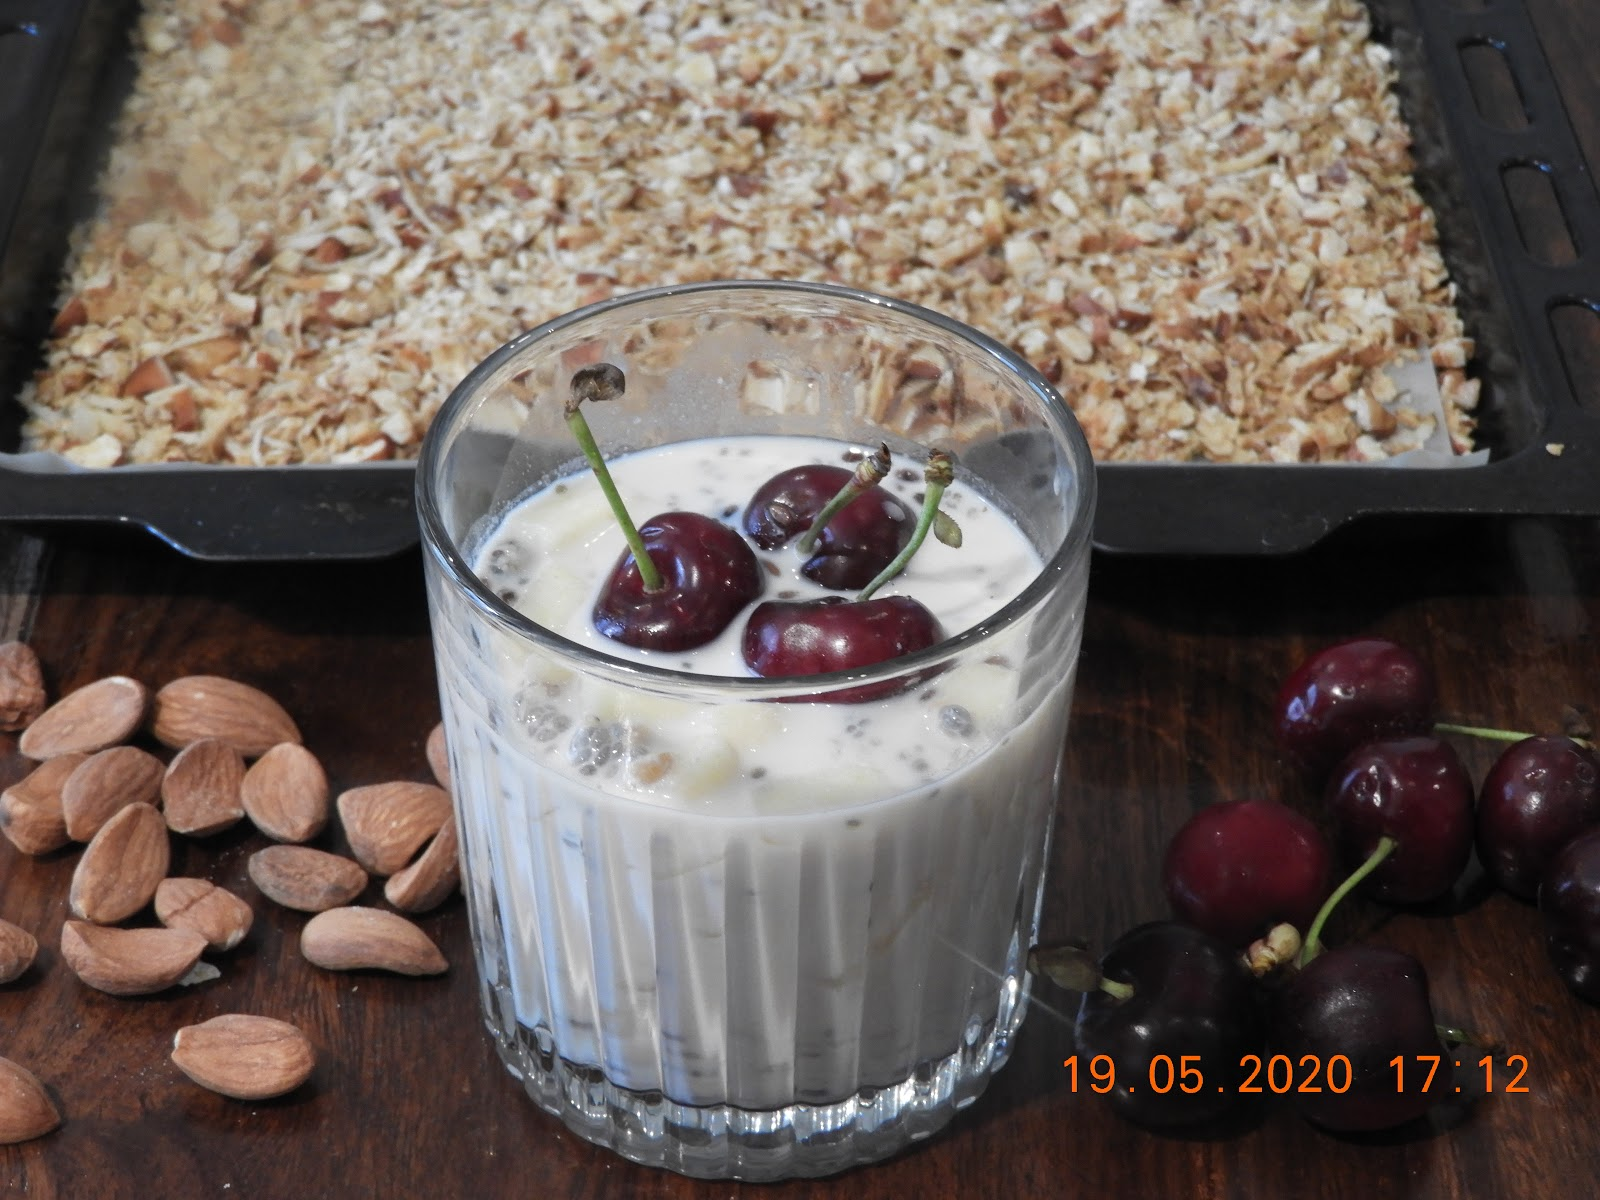 Baked Coconut Oats with Almond Milk & Fruits - American cuisine